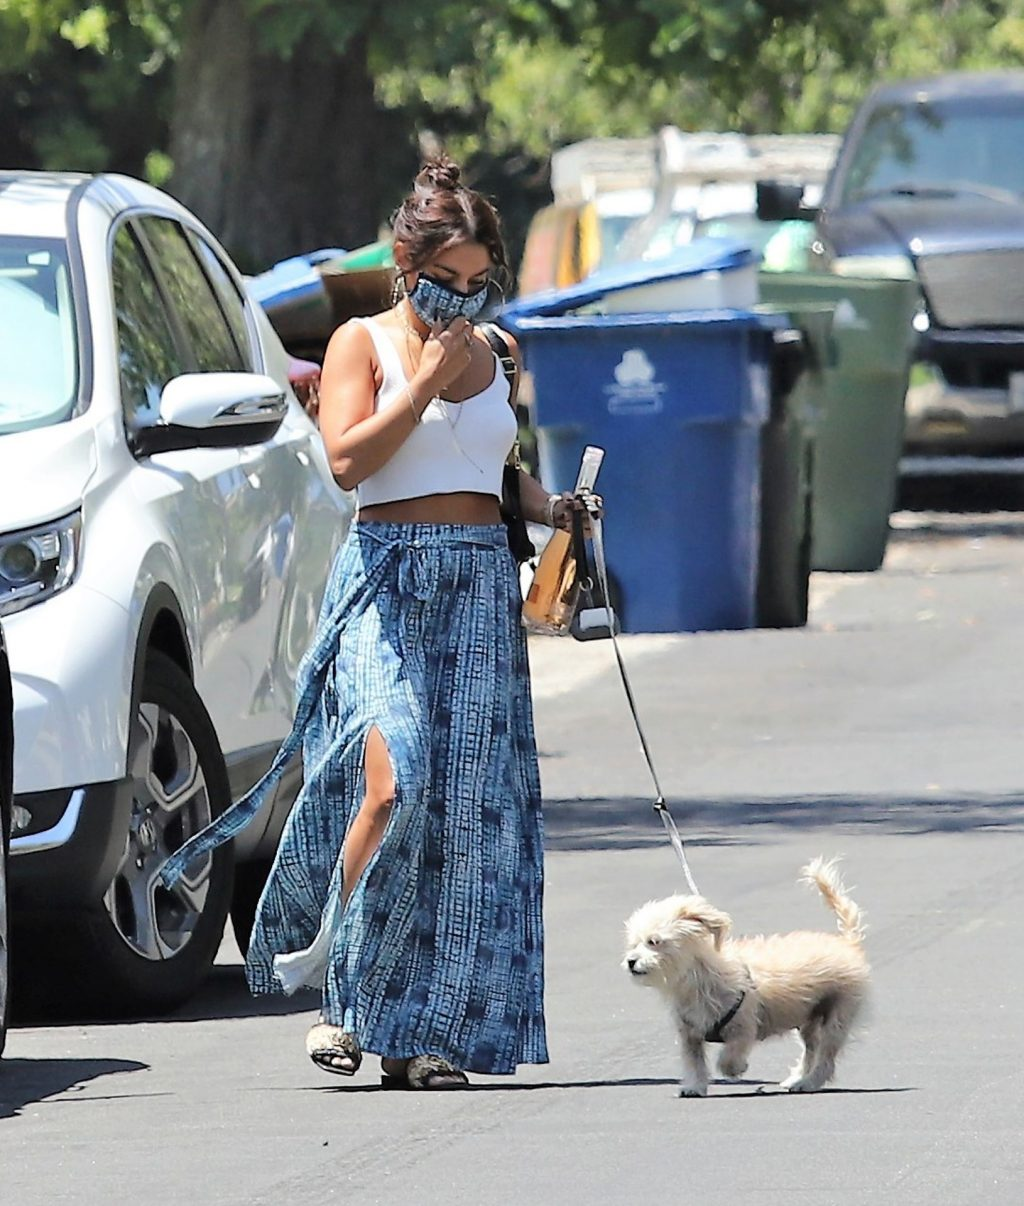 Sexy Vanessa Hudgens is Pictured Visiting a Friend With a Bottle of Wine in Hand in LA (20 Photos)